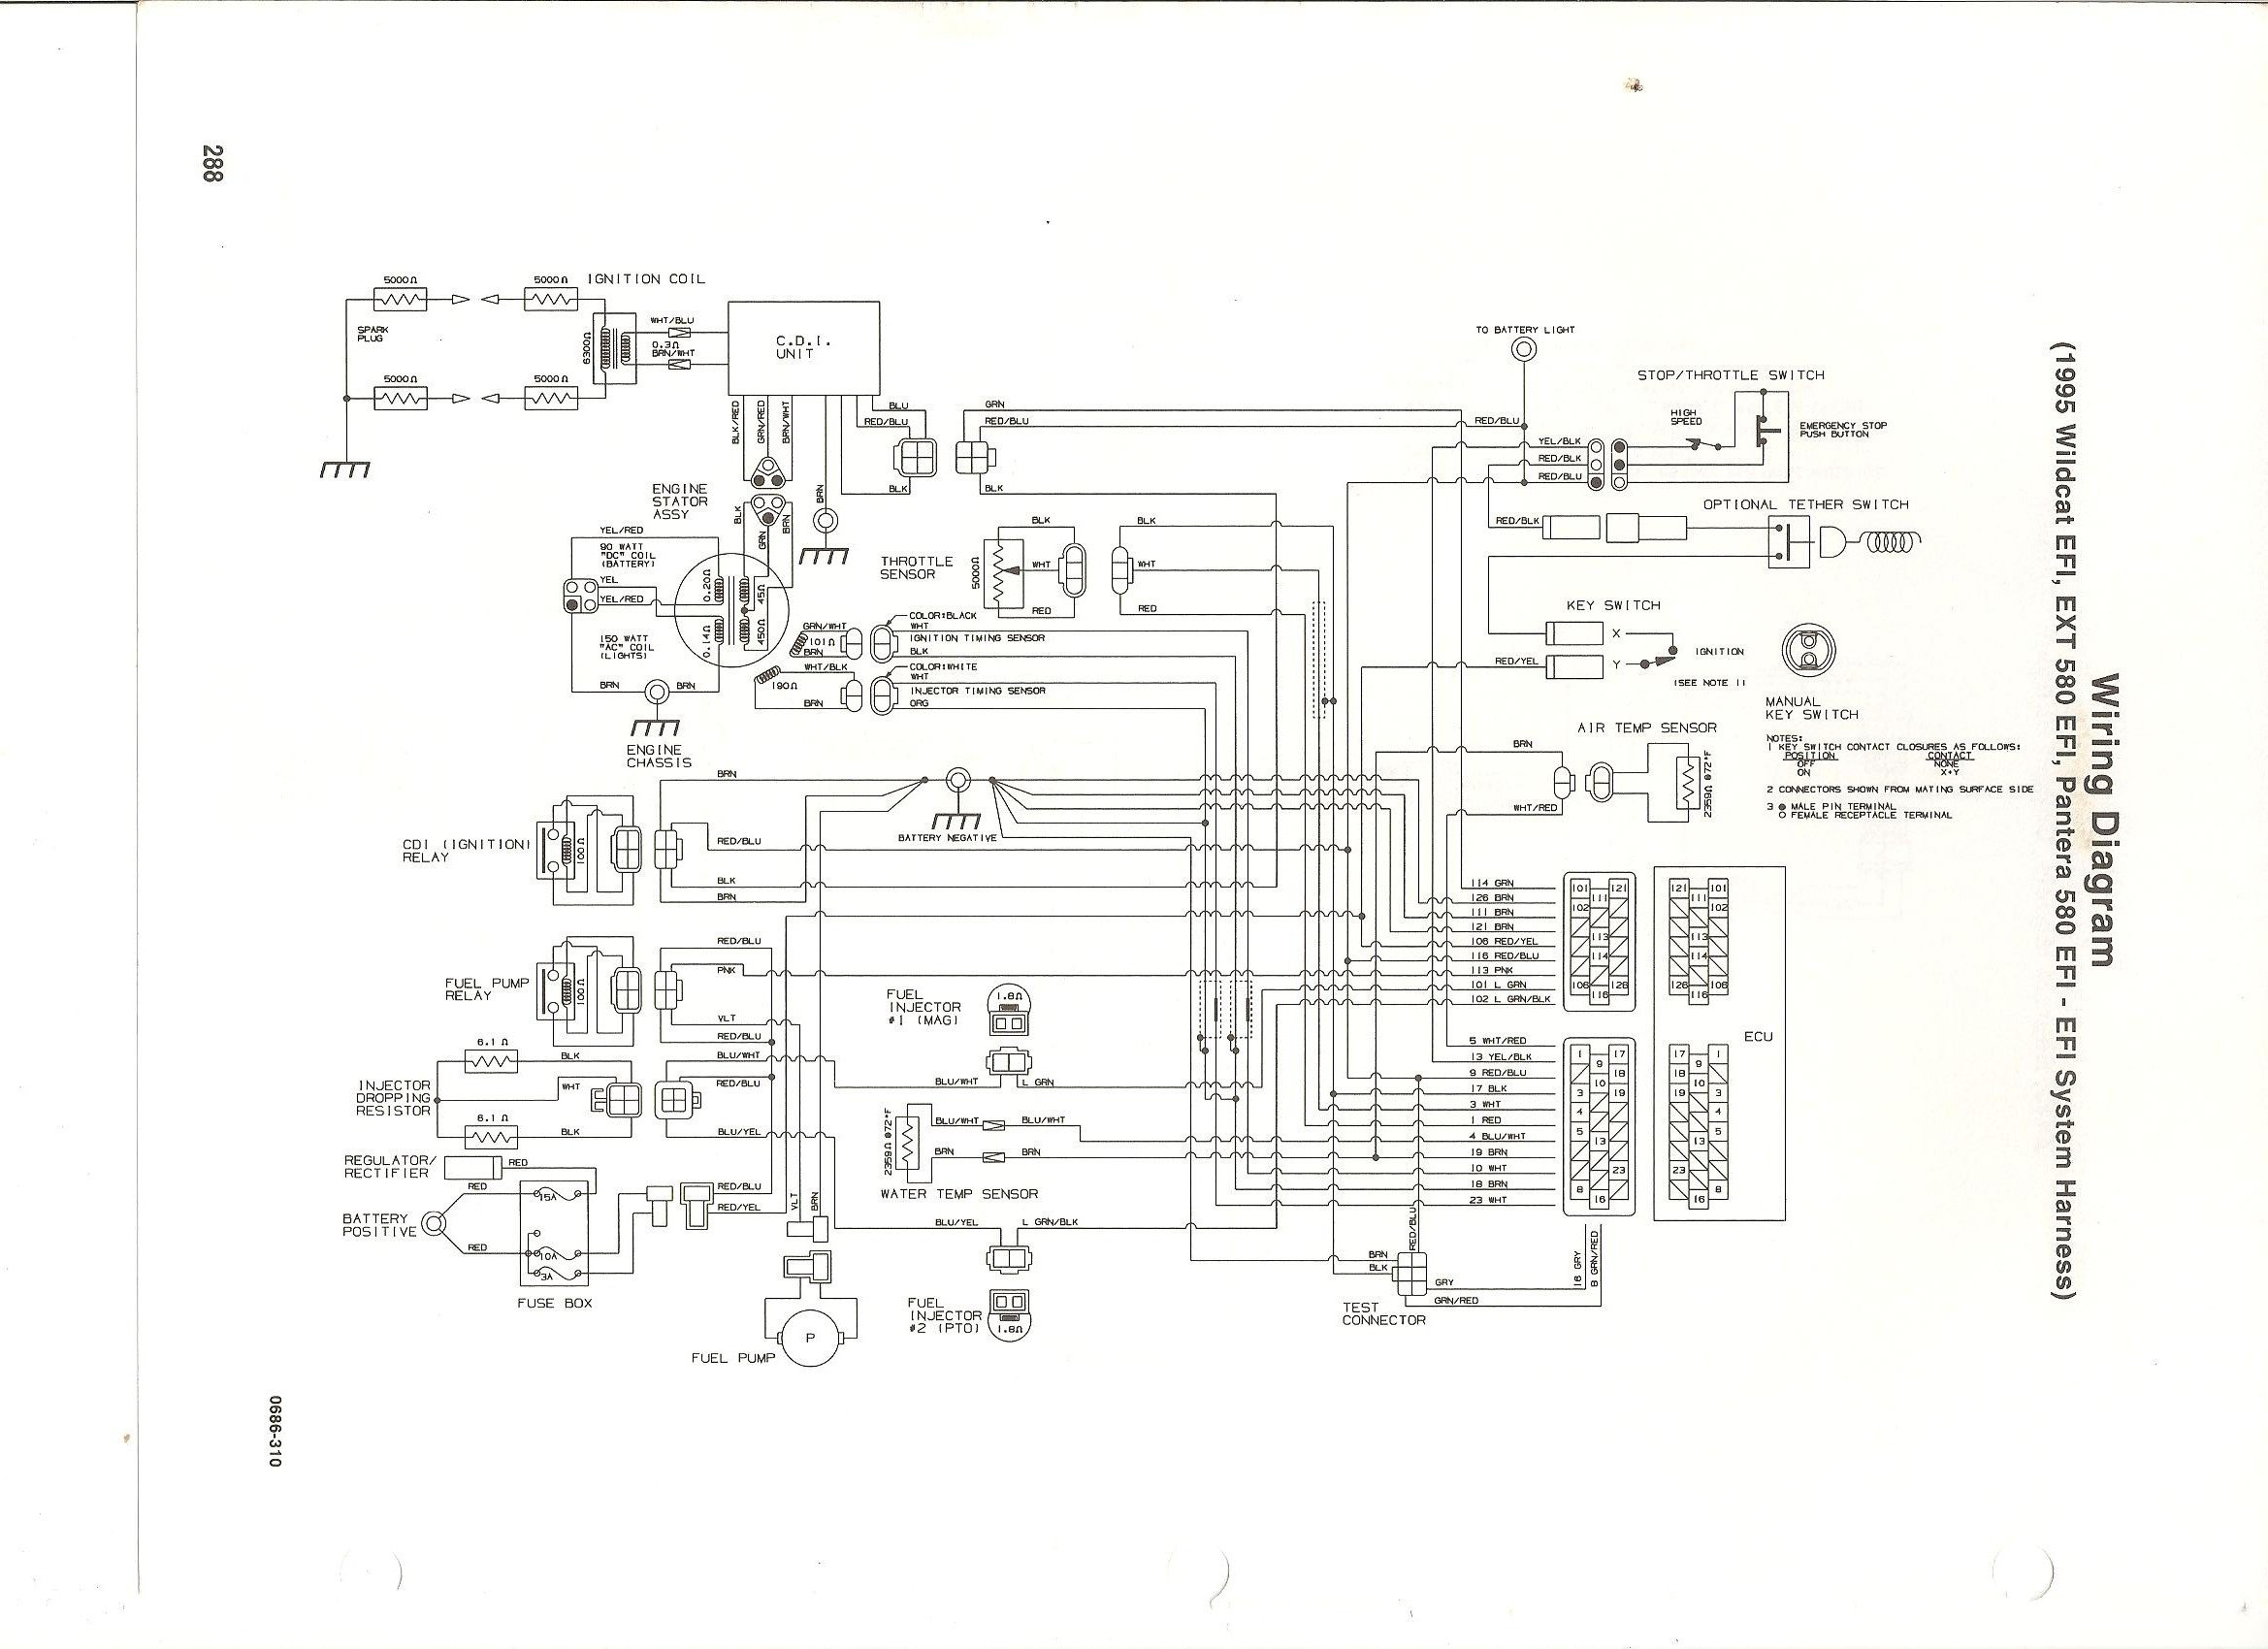 [TBQL_4184]  Arctic Cat 440 Wiring Diagram - Ford Freestyle O2 Sensor Wiring for Wiring  Diagram Schematics | Arctic Cat 340 Engine Wire Diagram |  | Wiring Diagram Schematics